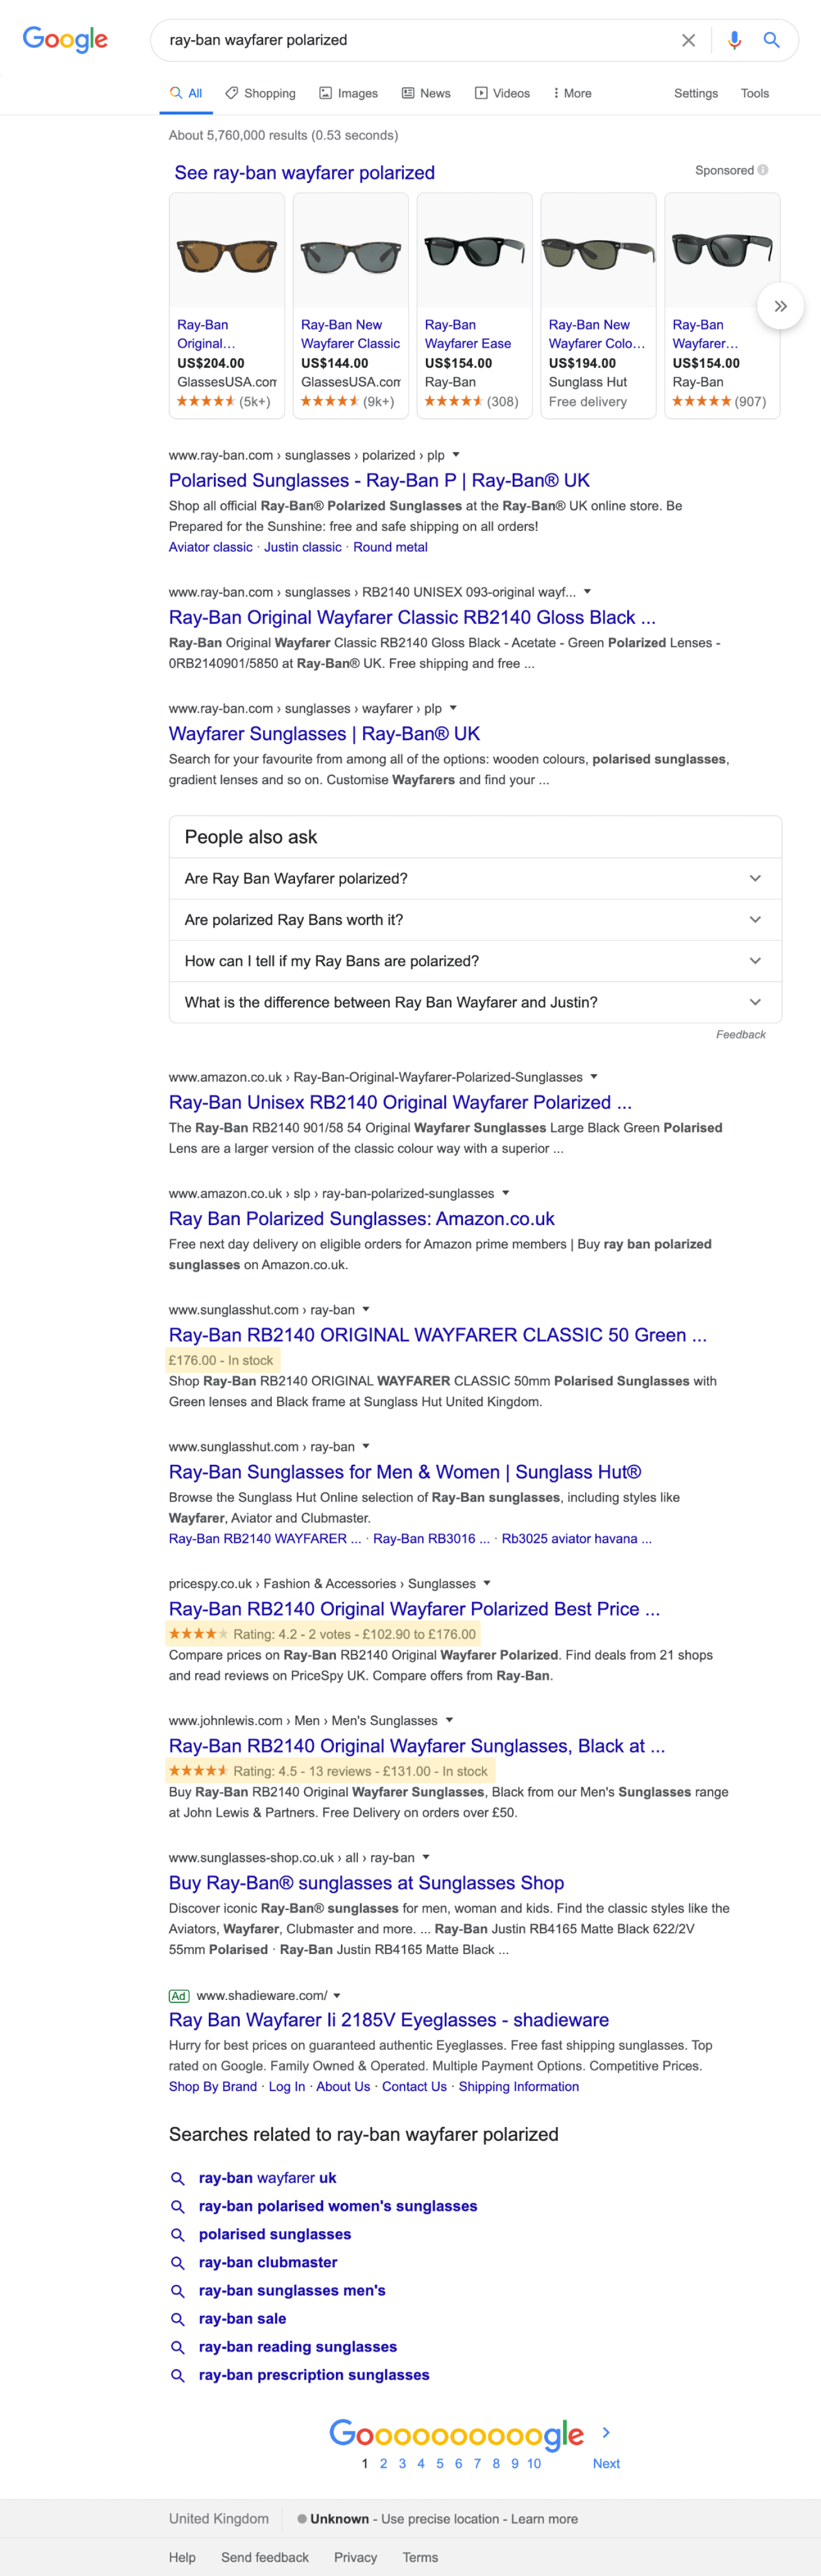 Rich Snippets: Simple Guide to Boosting CTR in SERPs